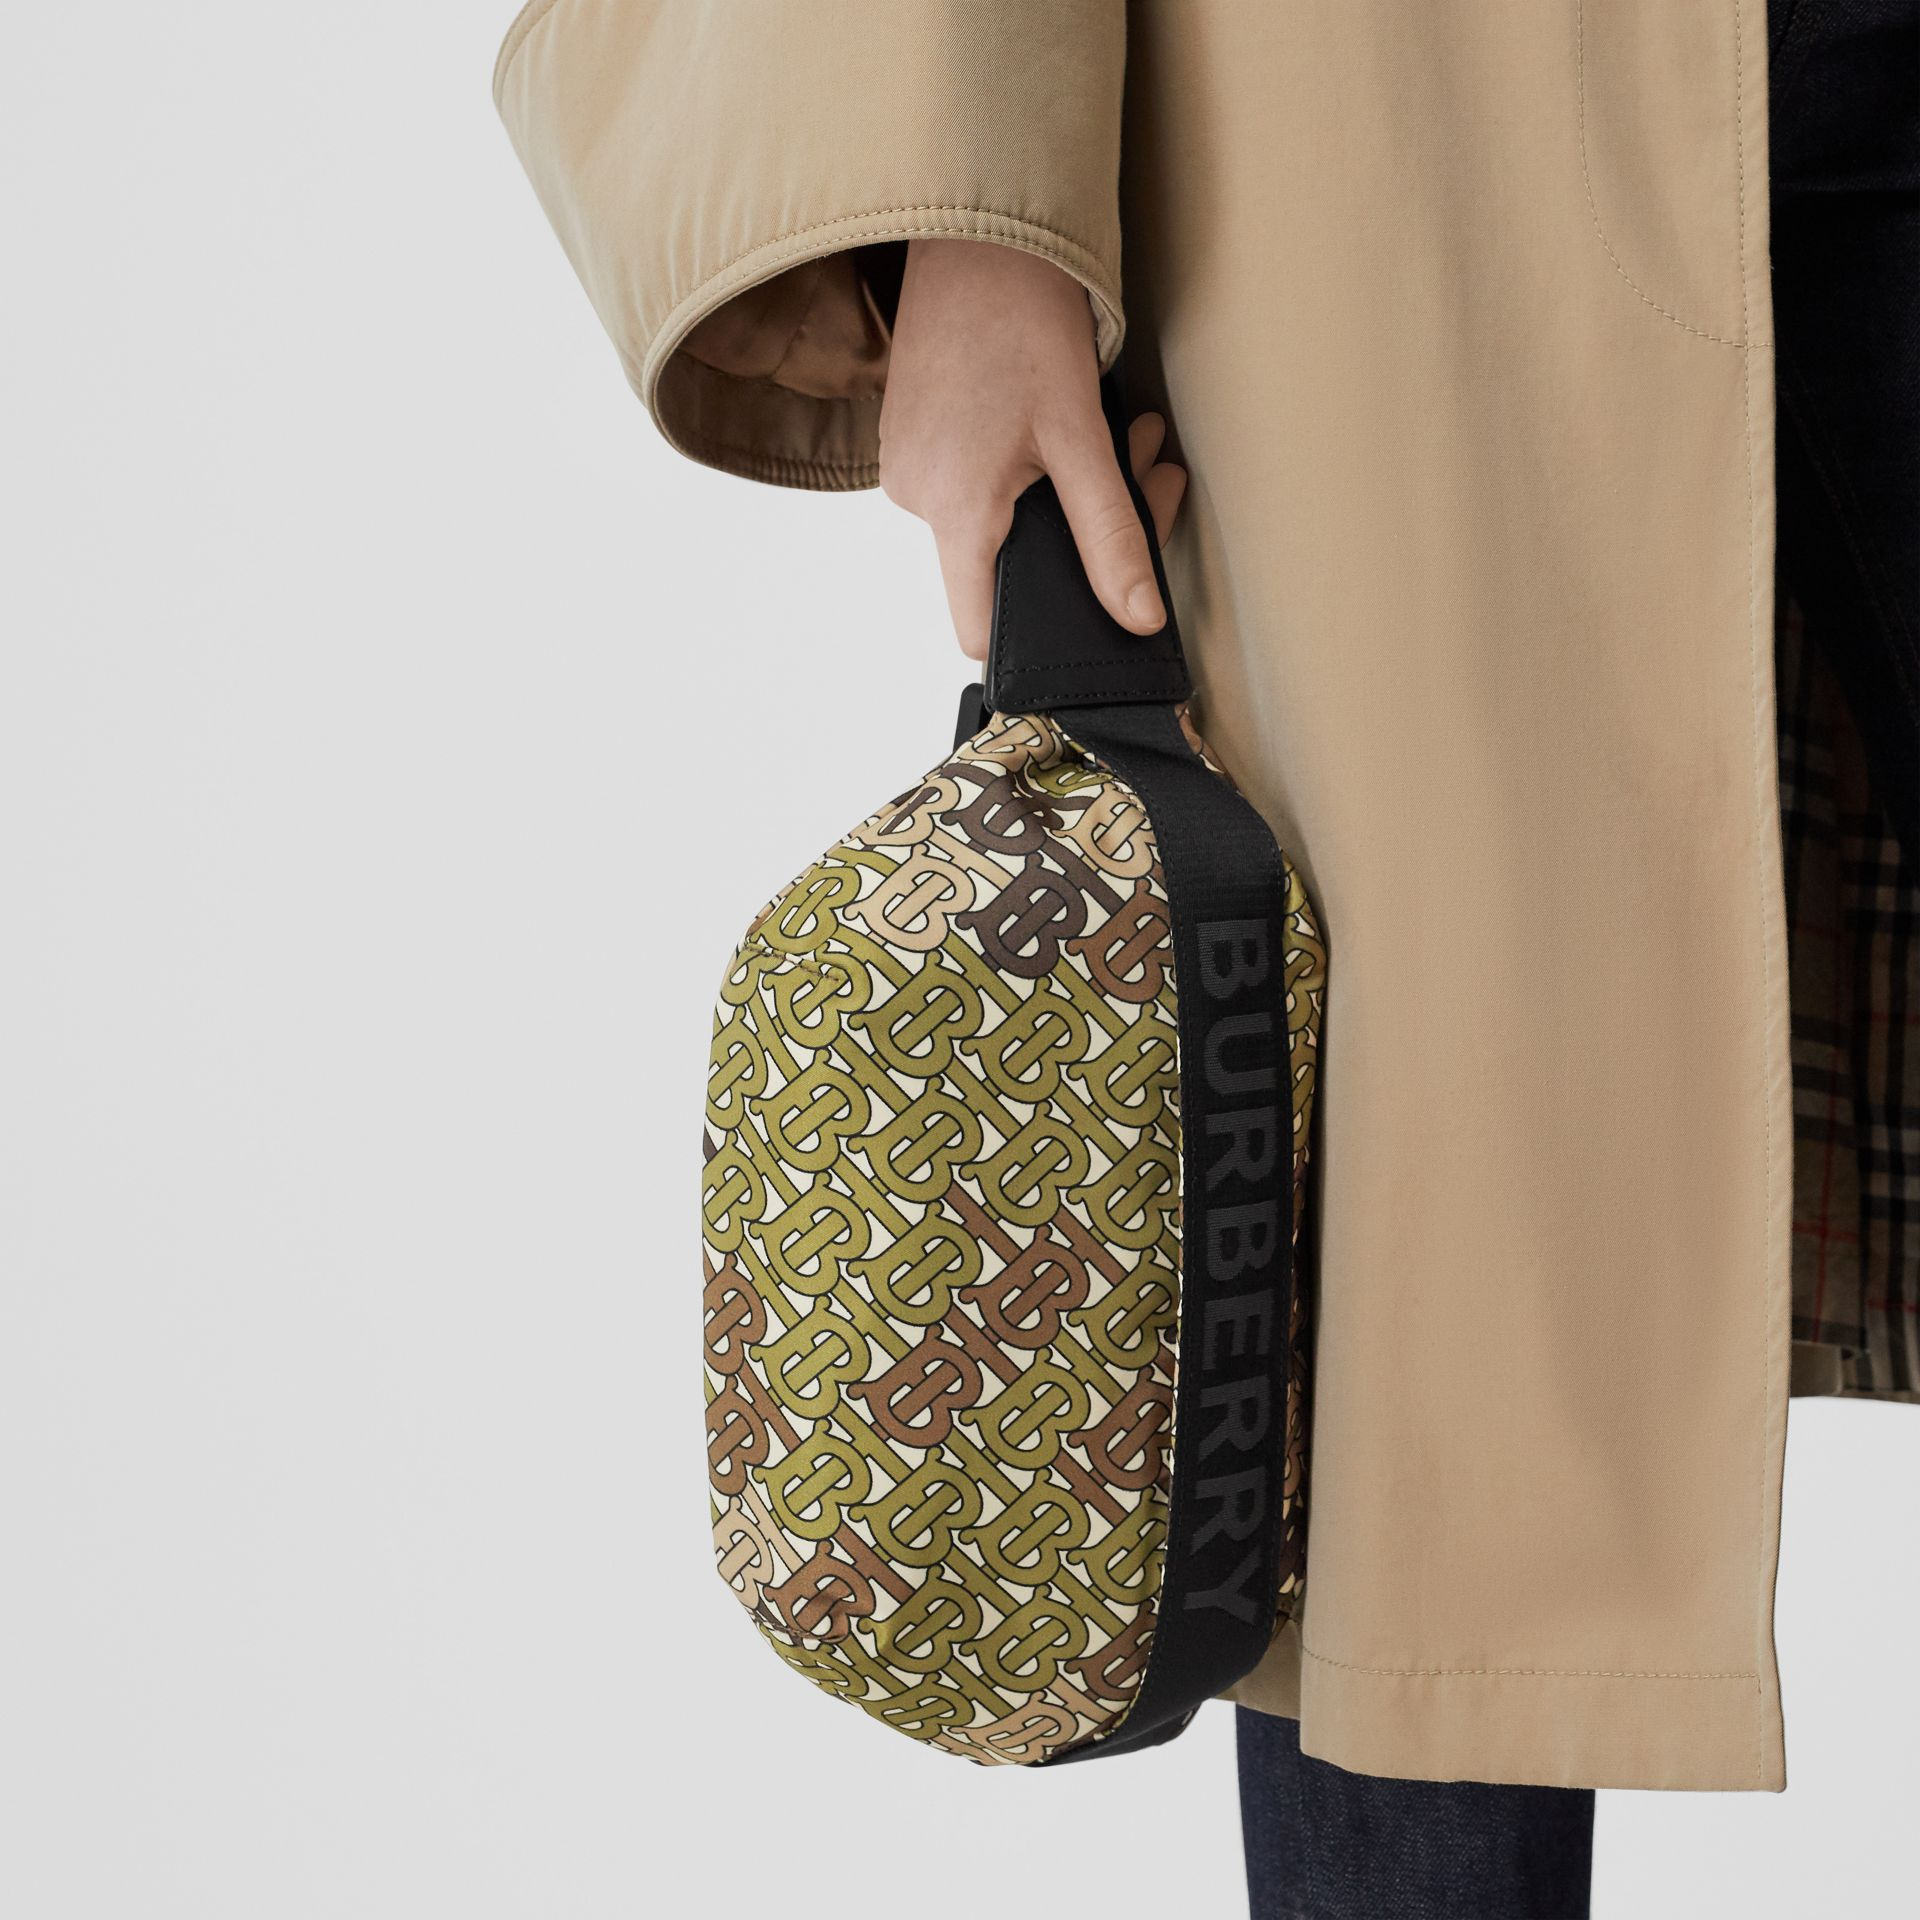 Medium Monogram Print Bum Bag in Khaki Green | Burberry - gallery image 2